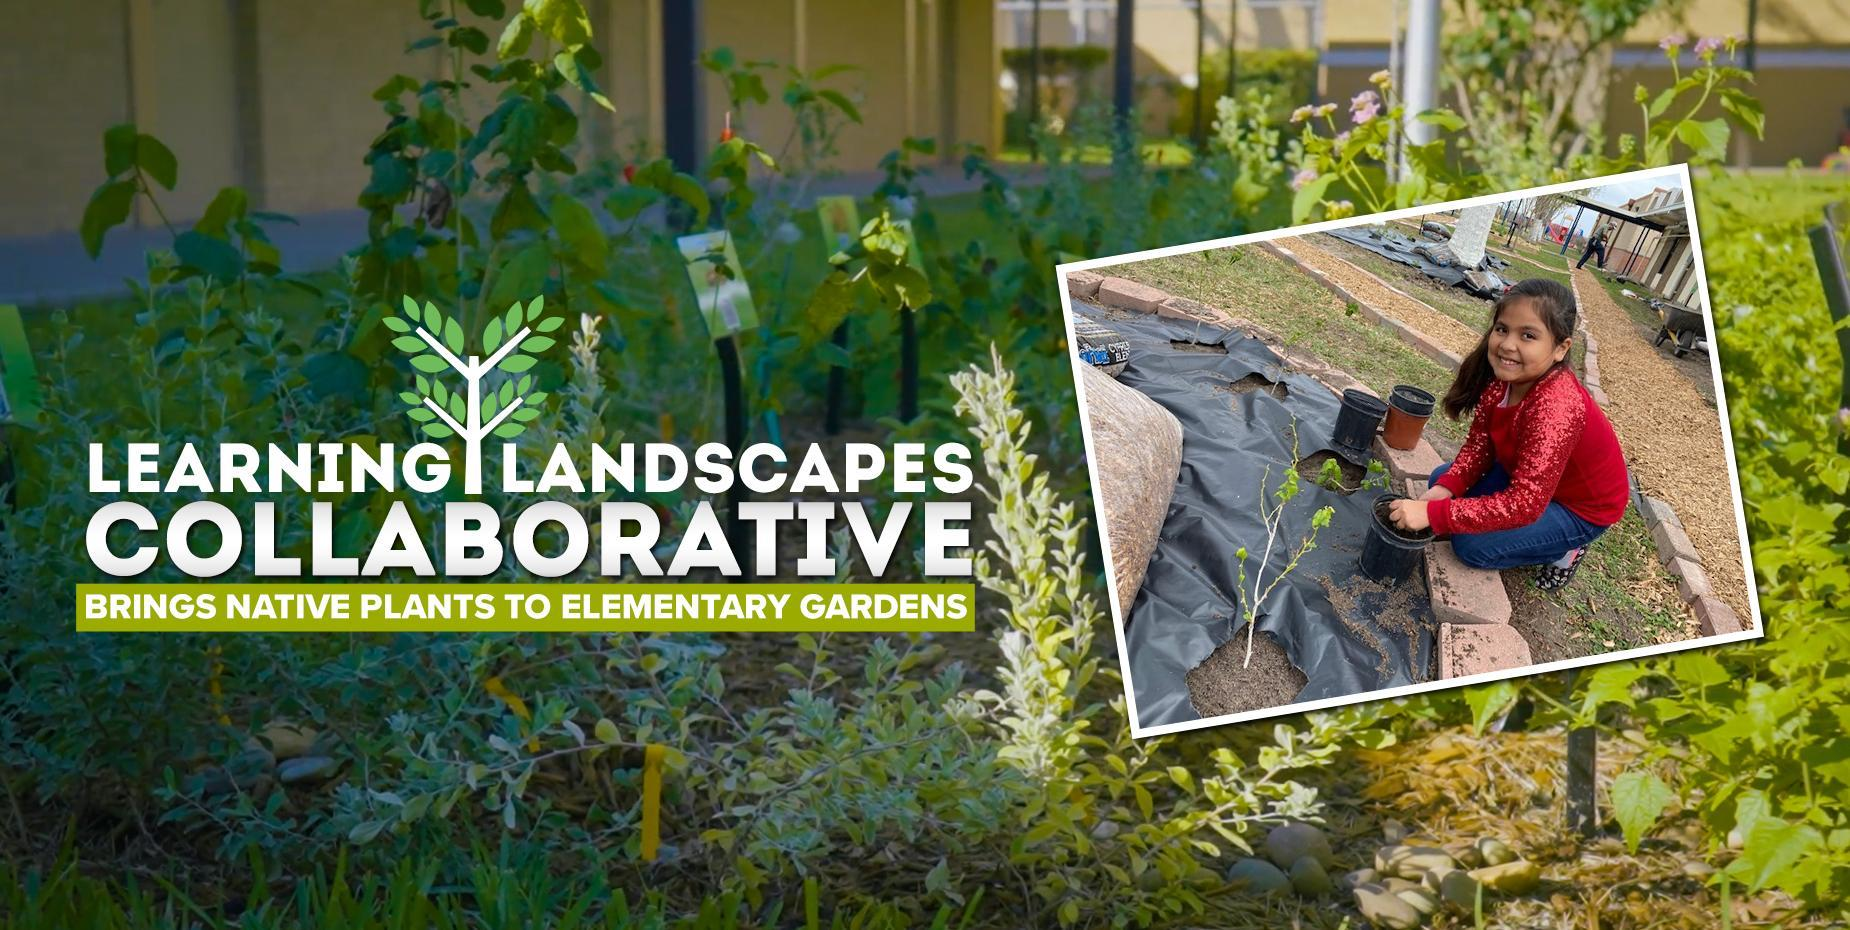 Learning Landscapes Collaborative brings native plants to elementary gardens